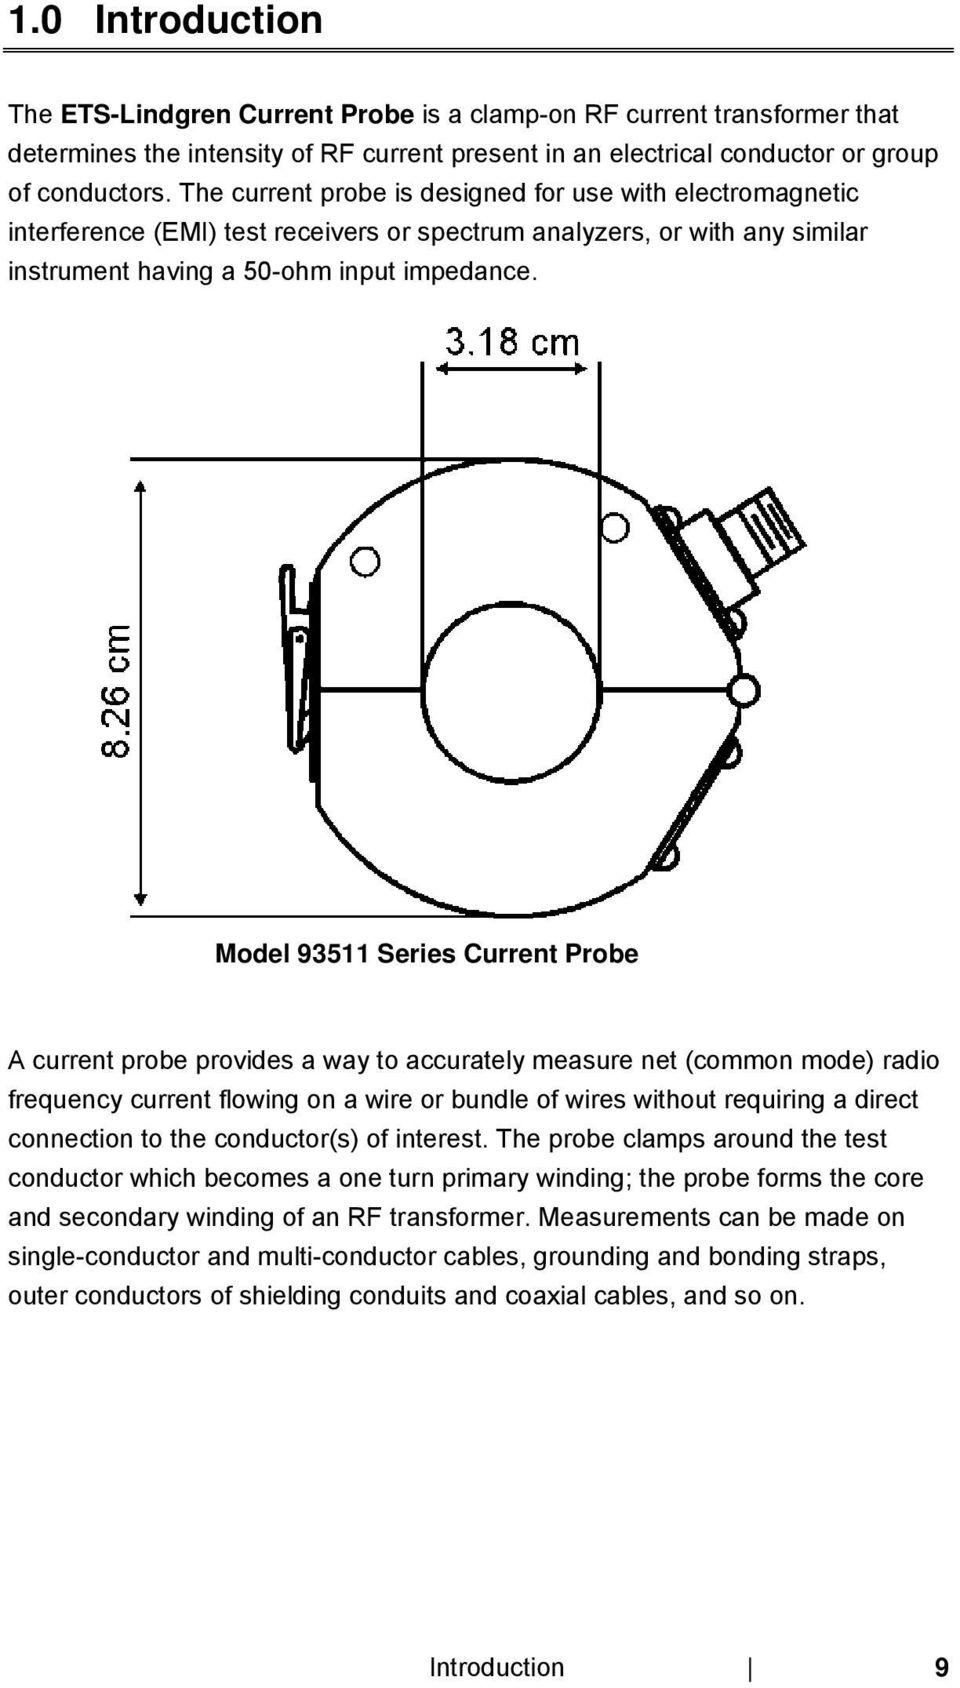 Model 93511 Series Current Probe A current probe provides a way to accurately measure net (common mode) radio frequency current flowing on a wire or bundle of wires without requiring a direct